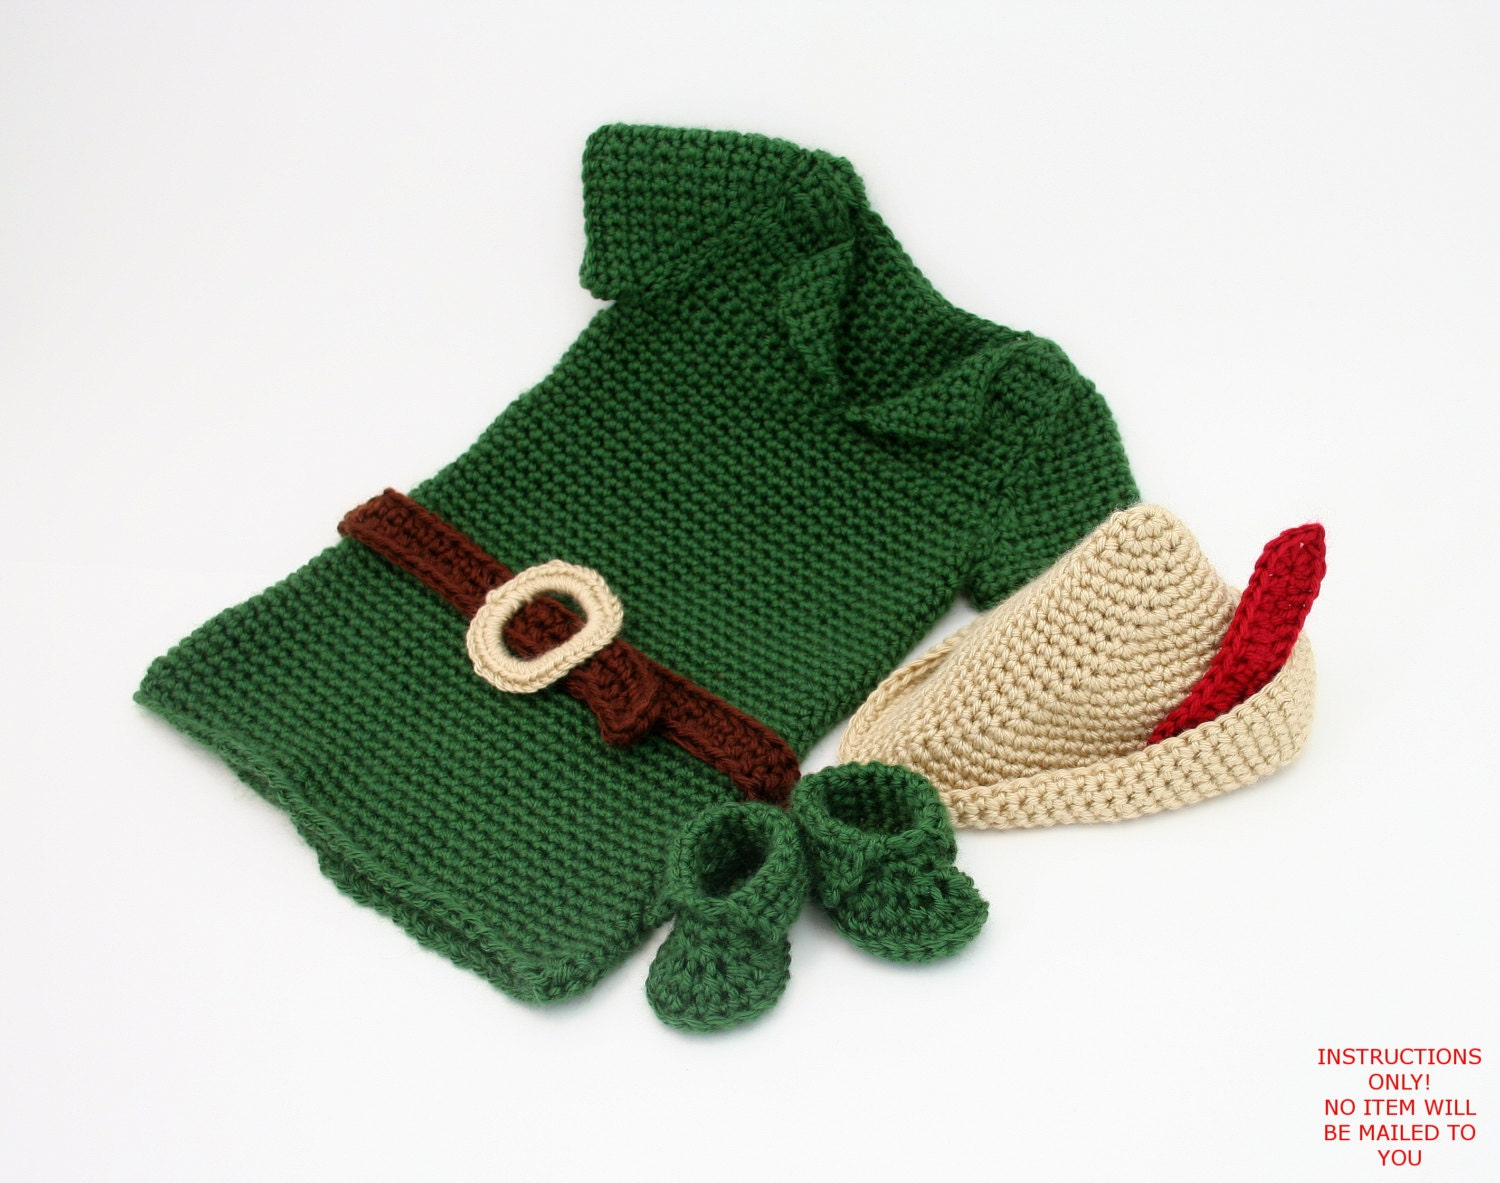 Pdf digital patternboy crochet outfitbaby robin hood costume zoom bankloansurffo Image collections